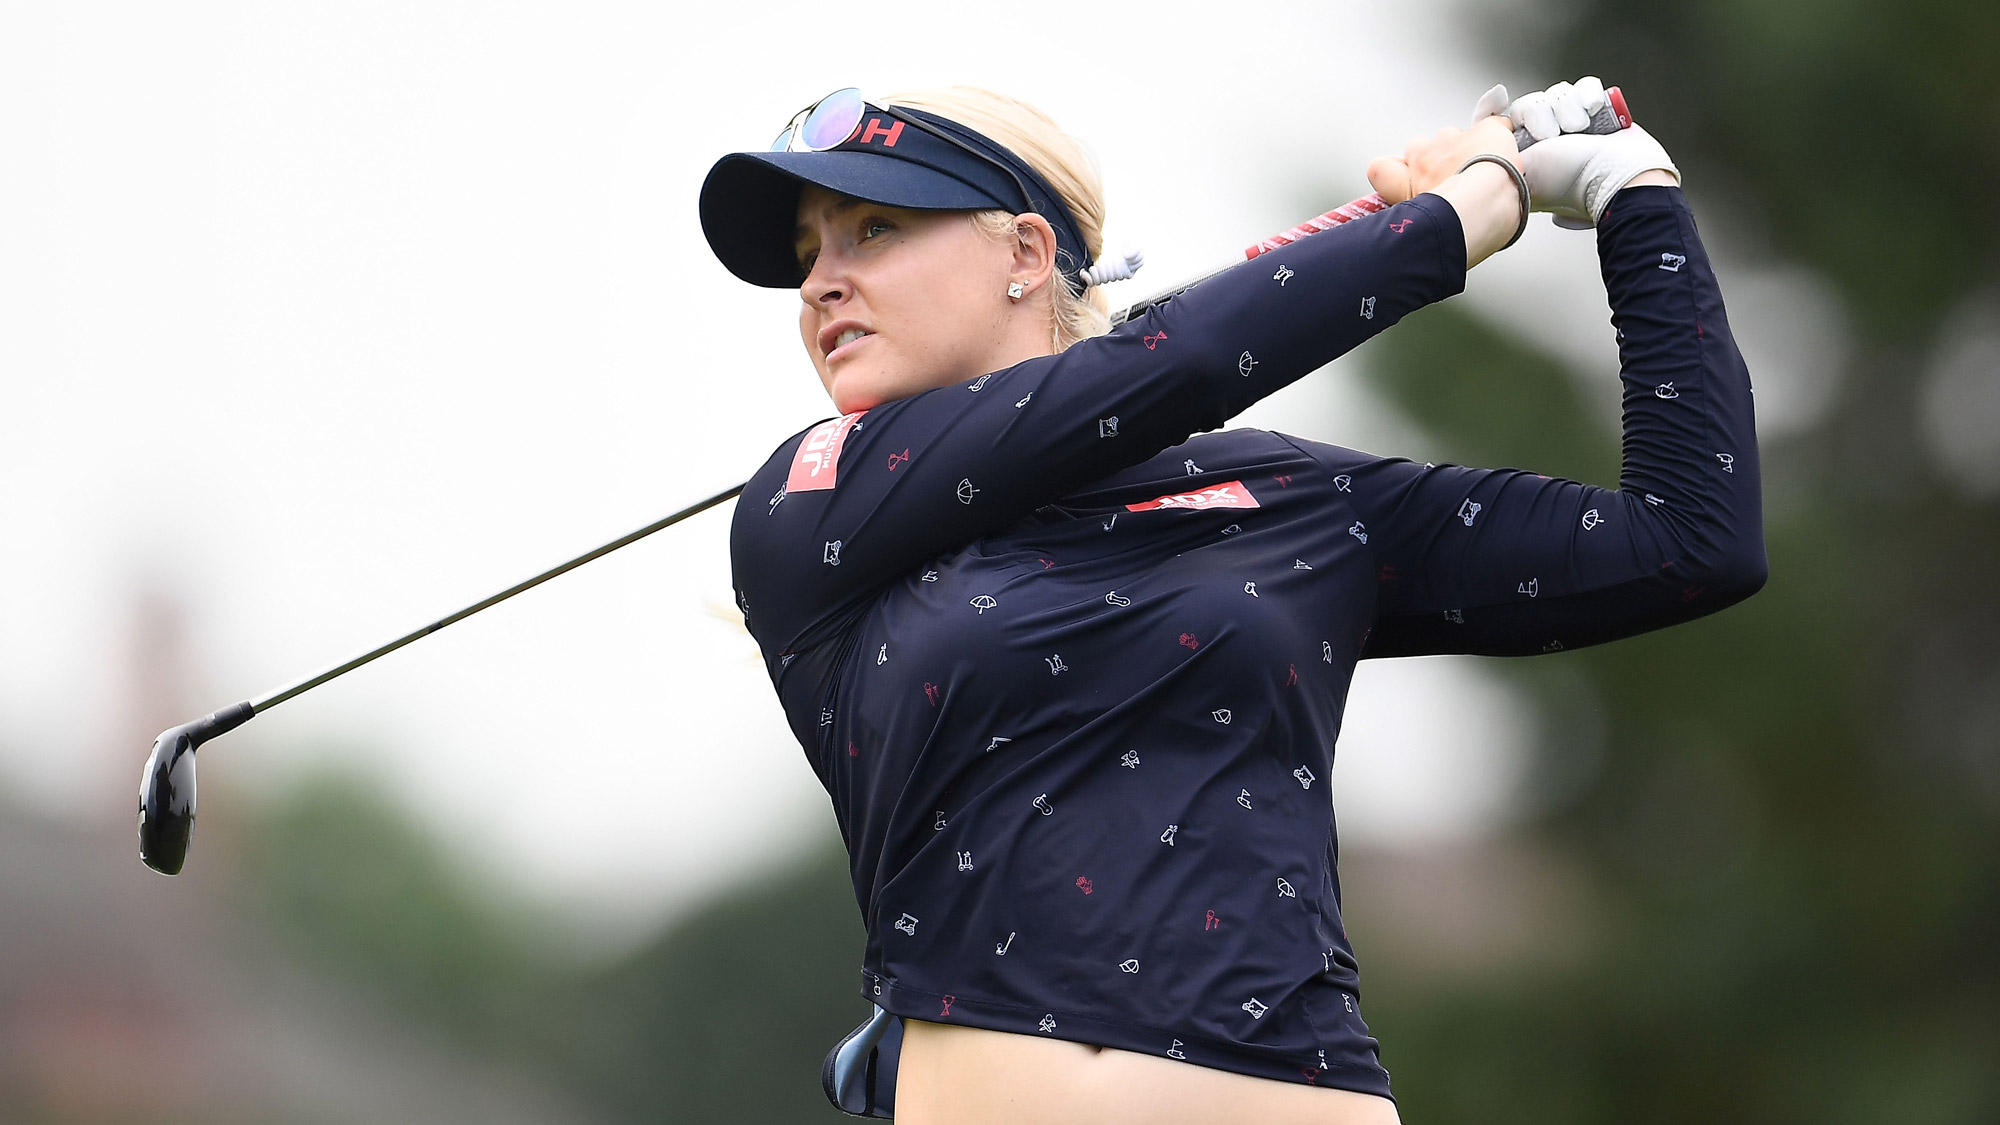 Charley Hull Takes a Rip on Day One in Oneida